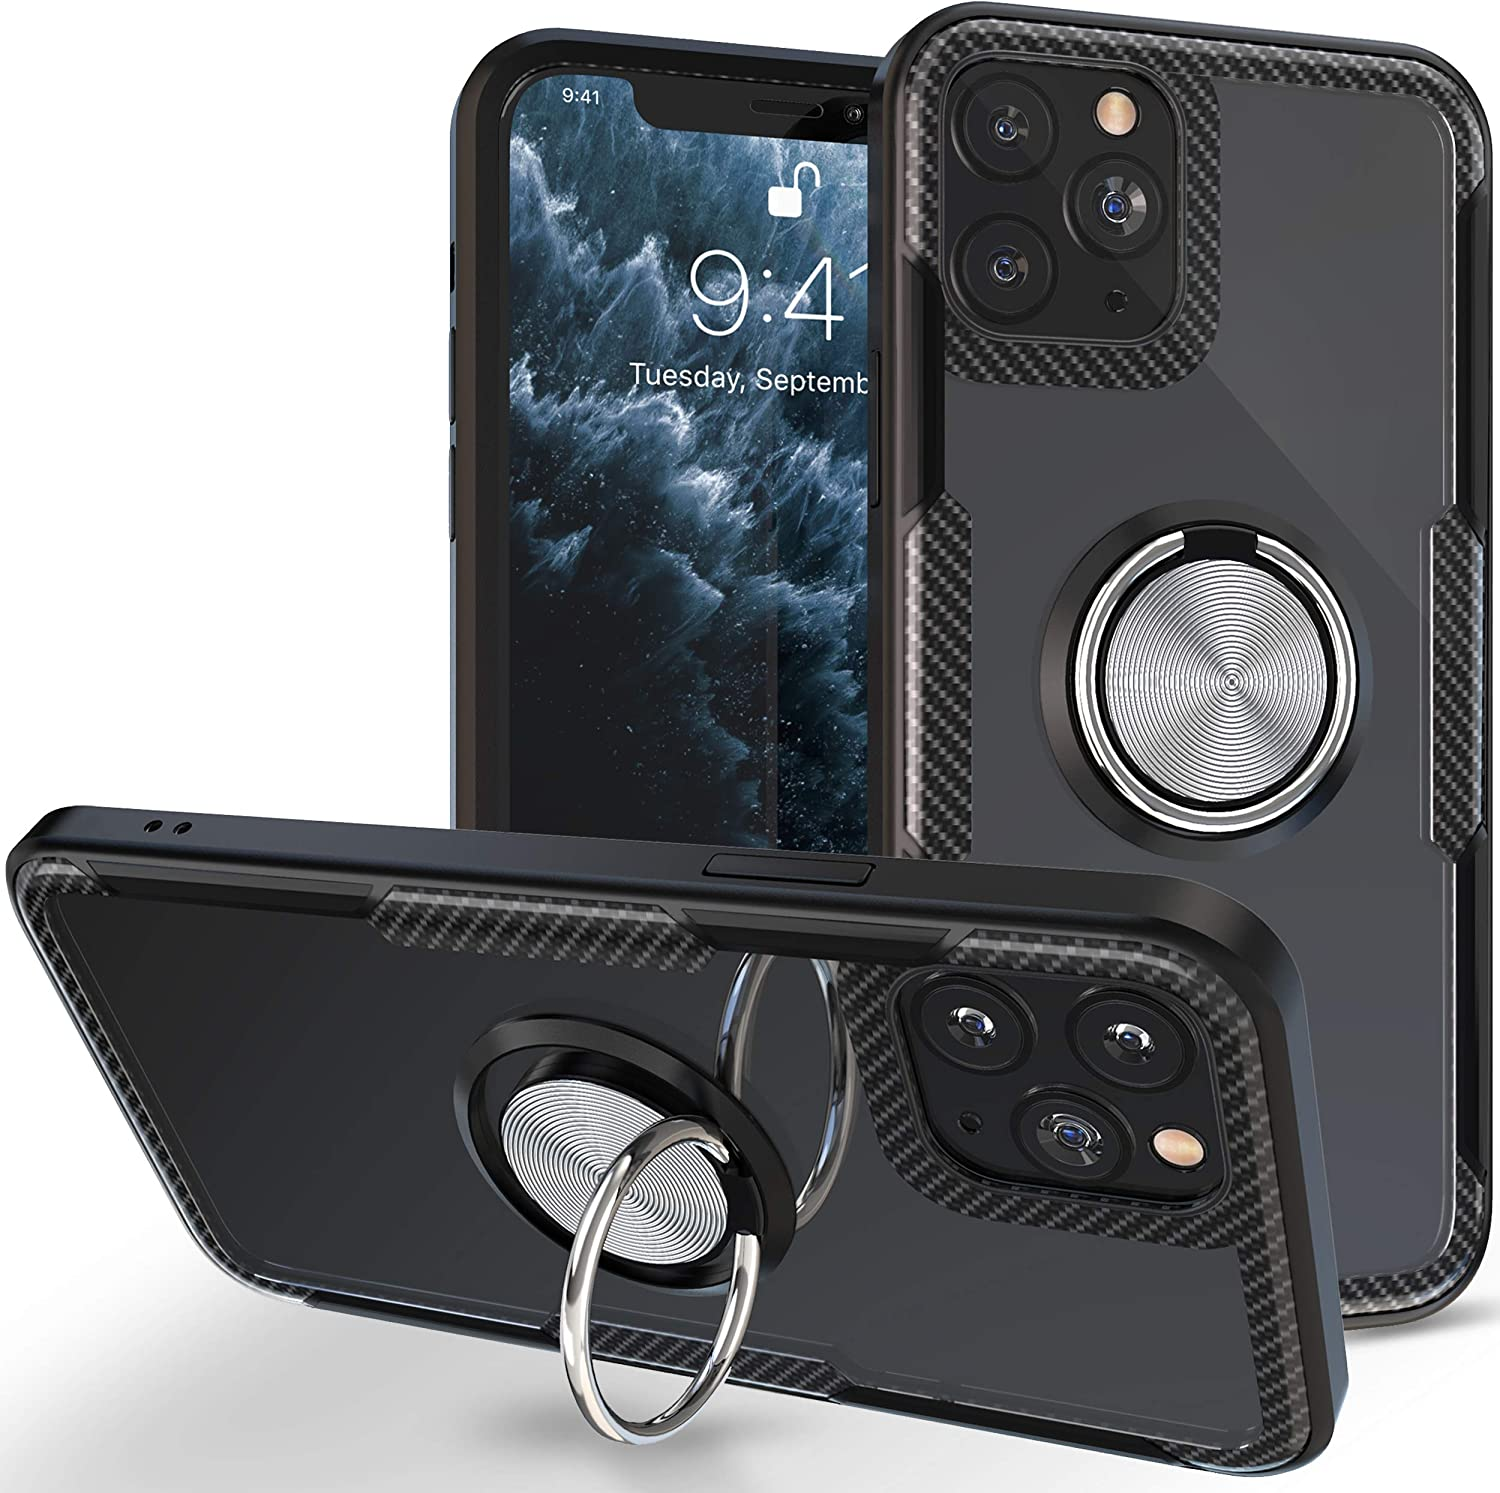 iPhone 11 Pro Max Case | Transparent Crystal Clear Cover | Carbon Fiber Trim & Rubber Bumper | 360° Rotating Magnetic Finger Ring | Kickstand | Compatible with Apple iPhone 11 Pro Max - Black